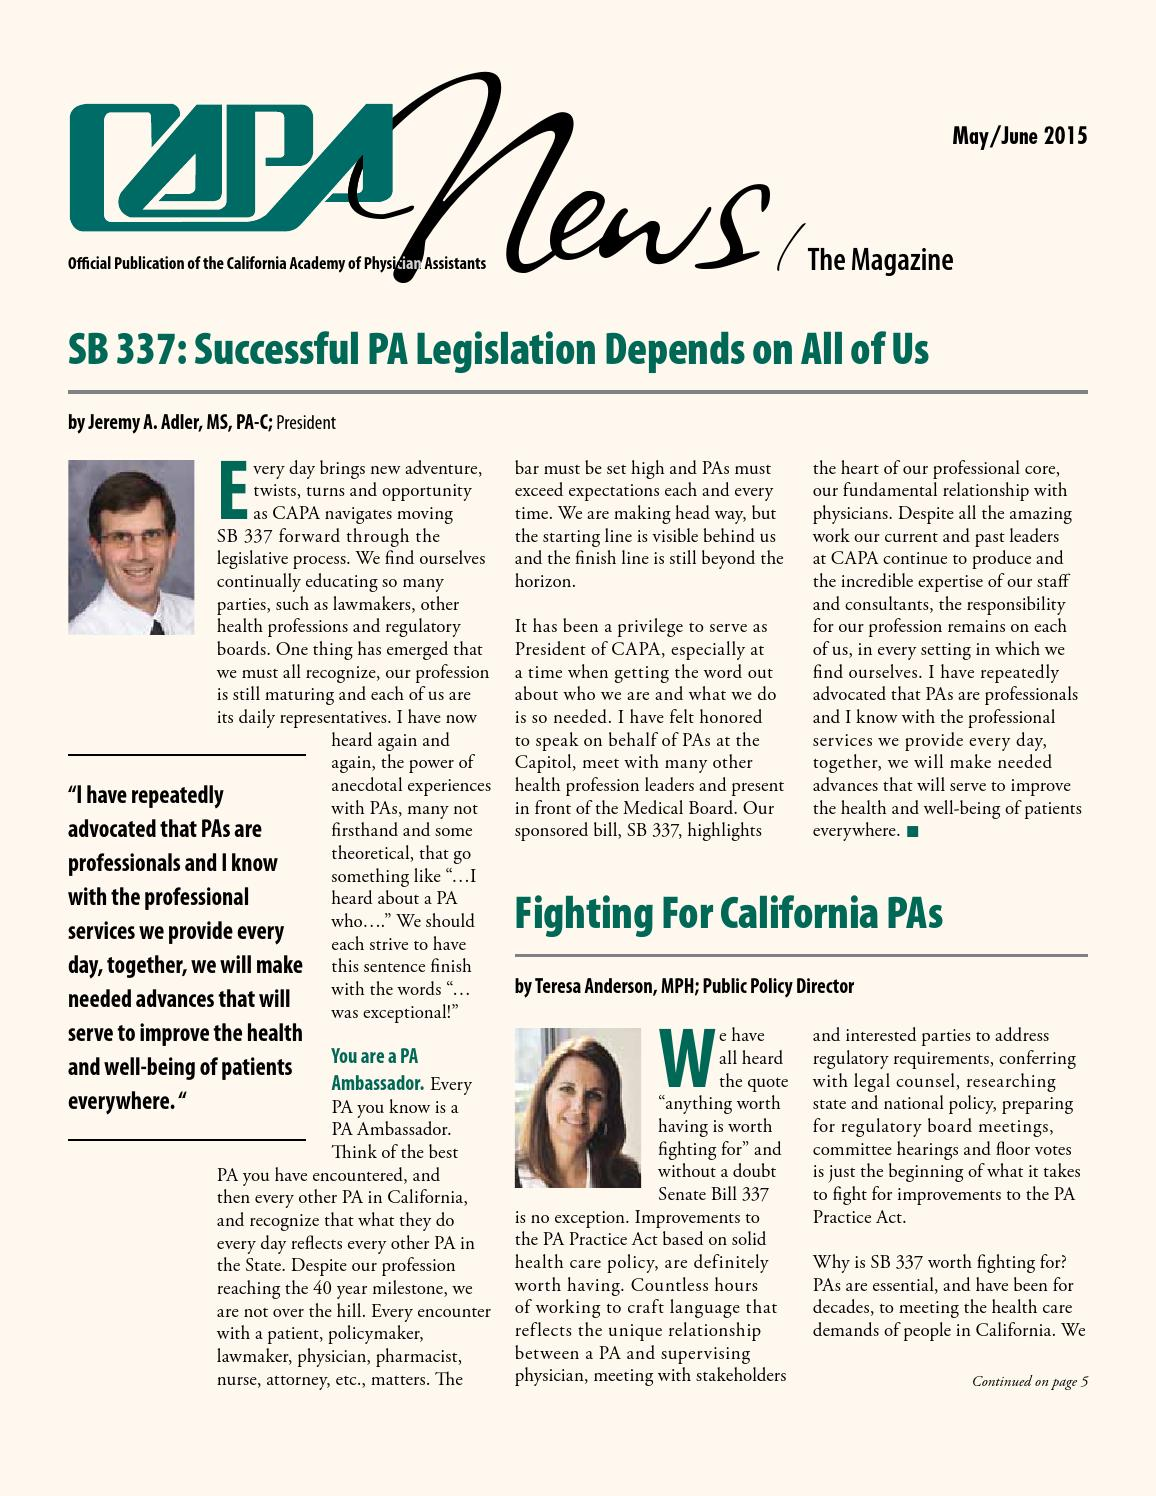 CAPA News May/June 2015 by CA Academy of PAs - issuu